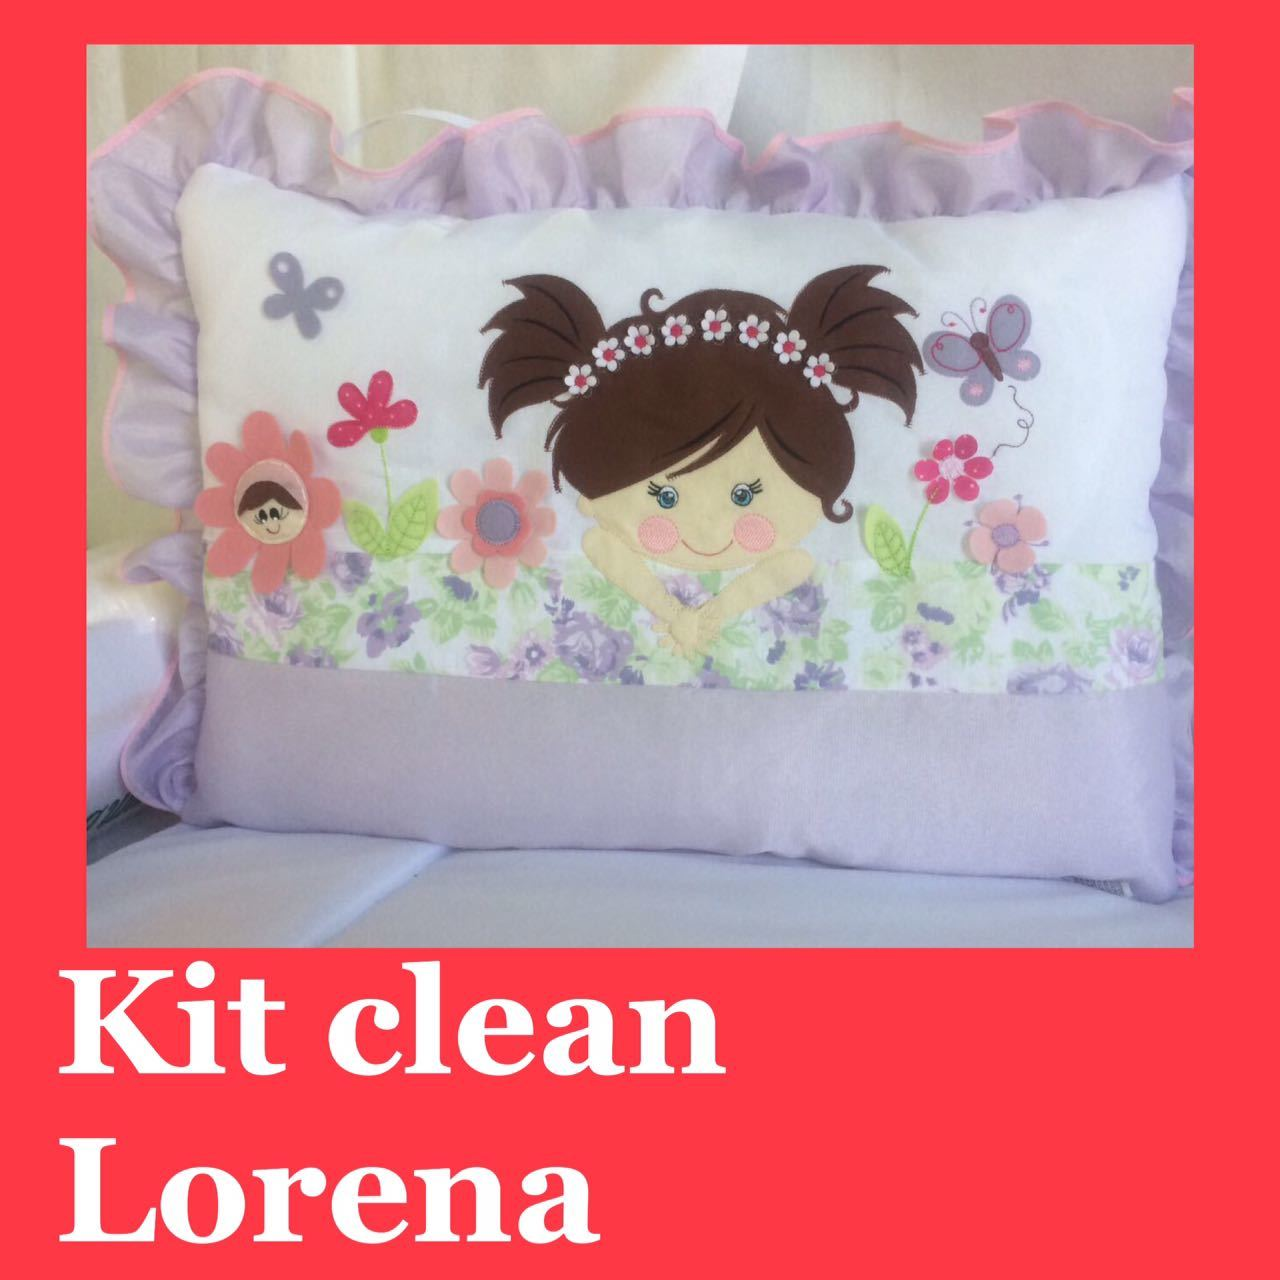 Kit Clean Lorena